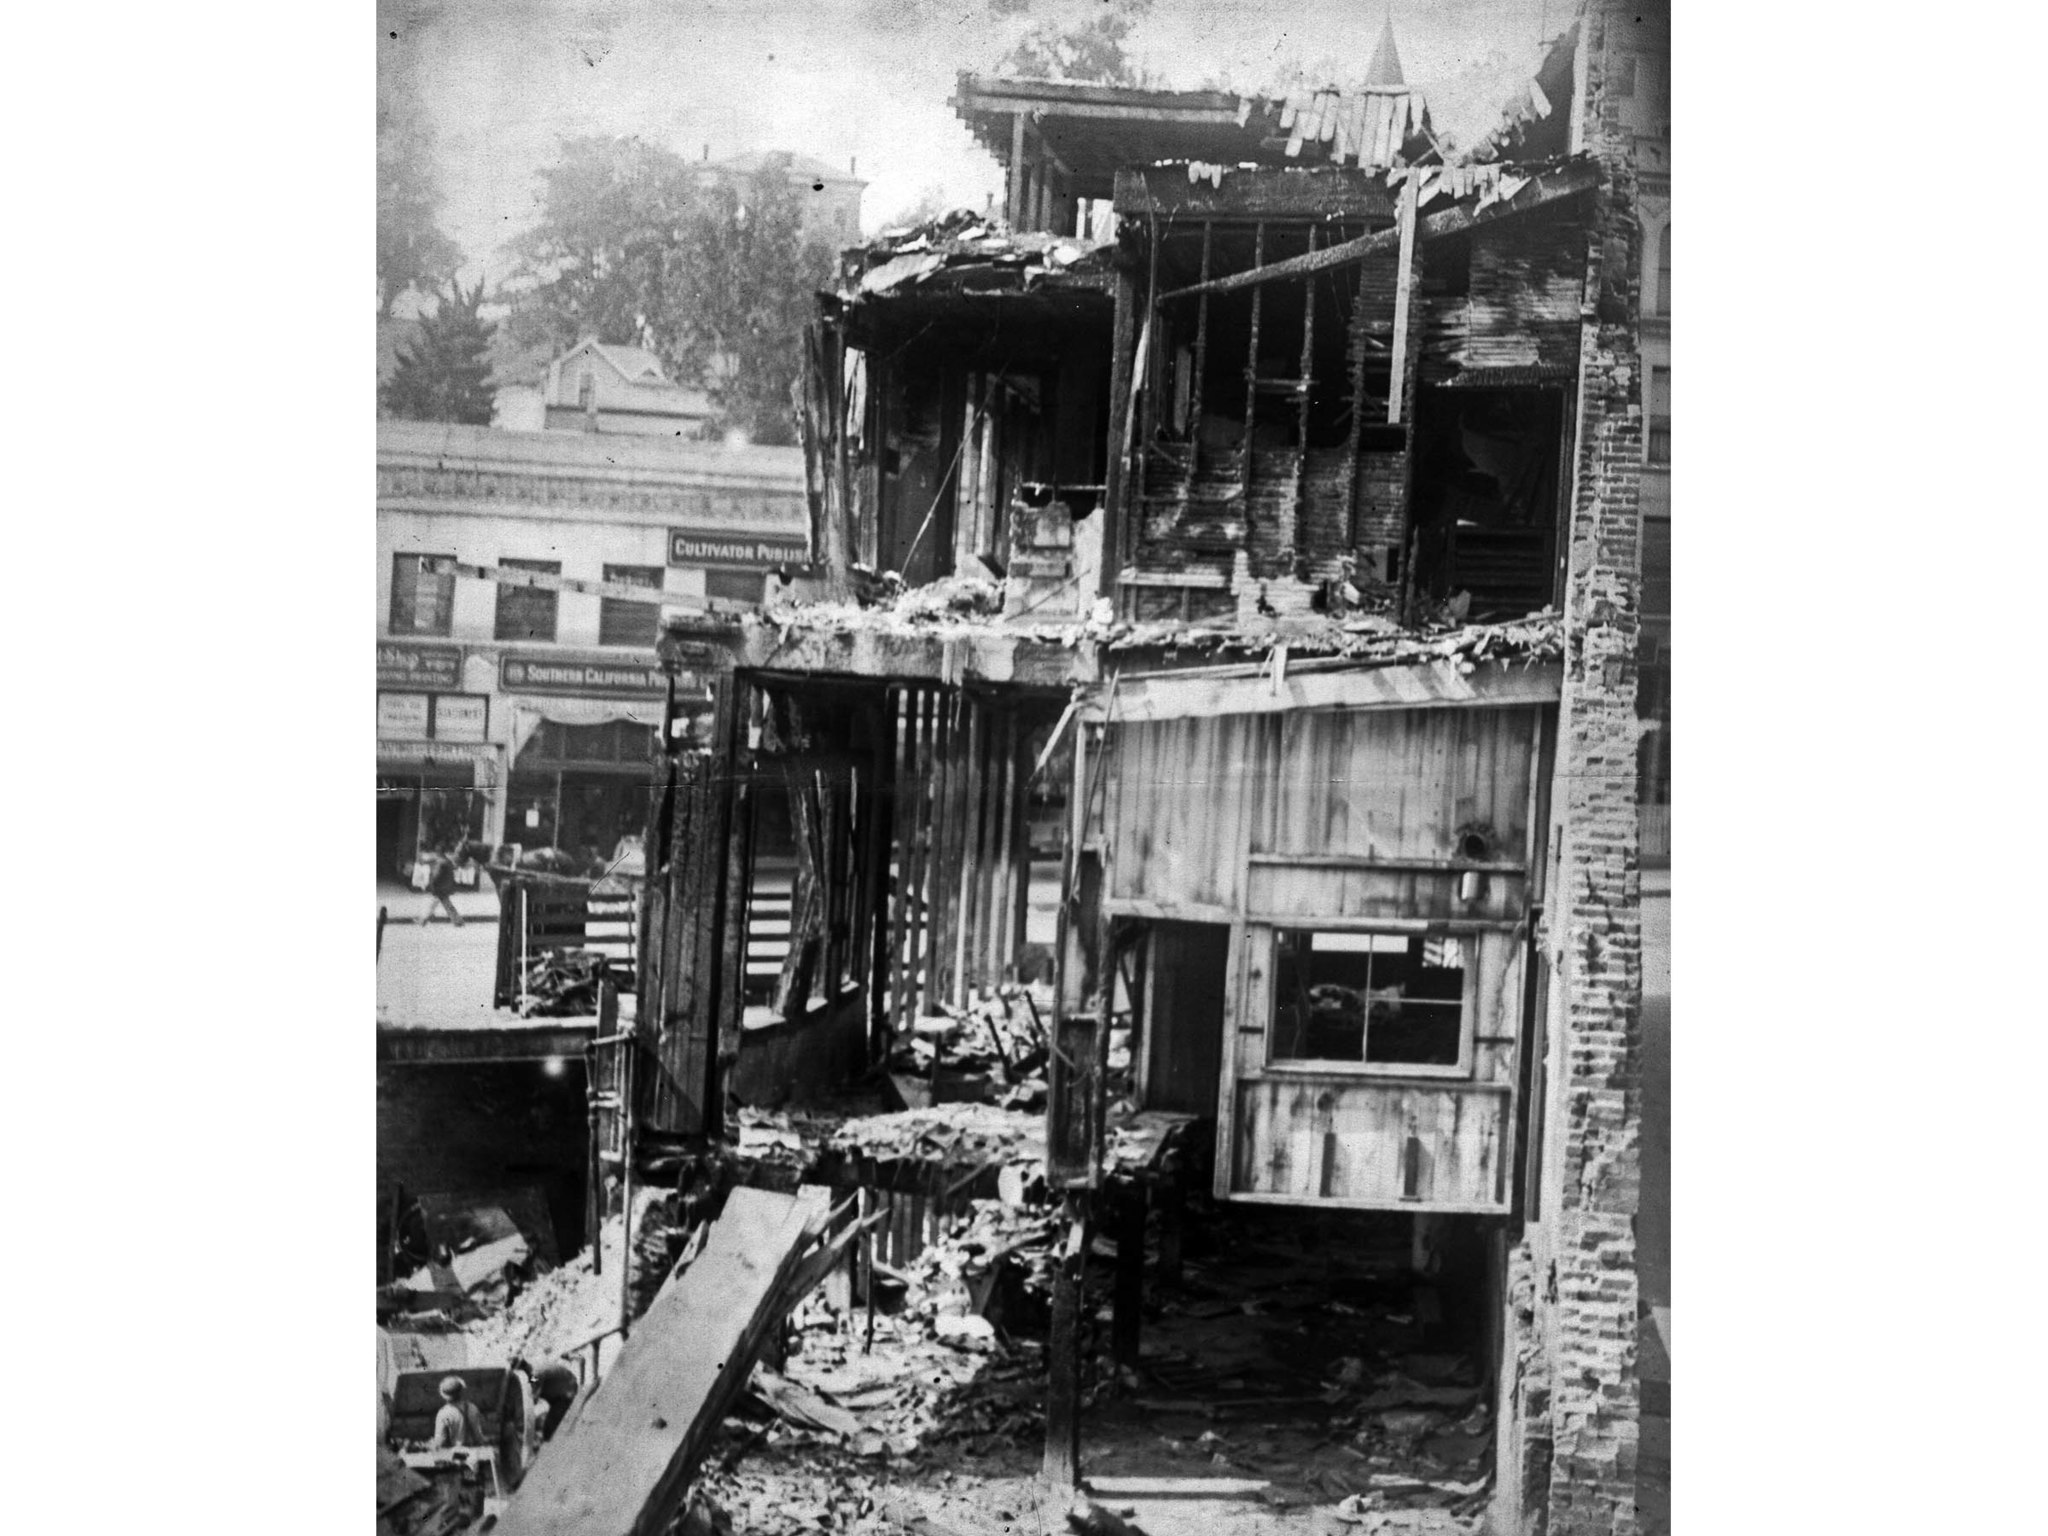 Oct. 1910: Los Angeles Times building after the Oct. 1, 1910, bombing.